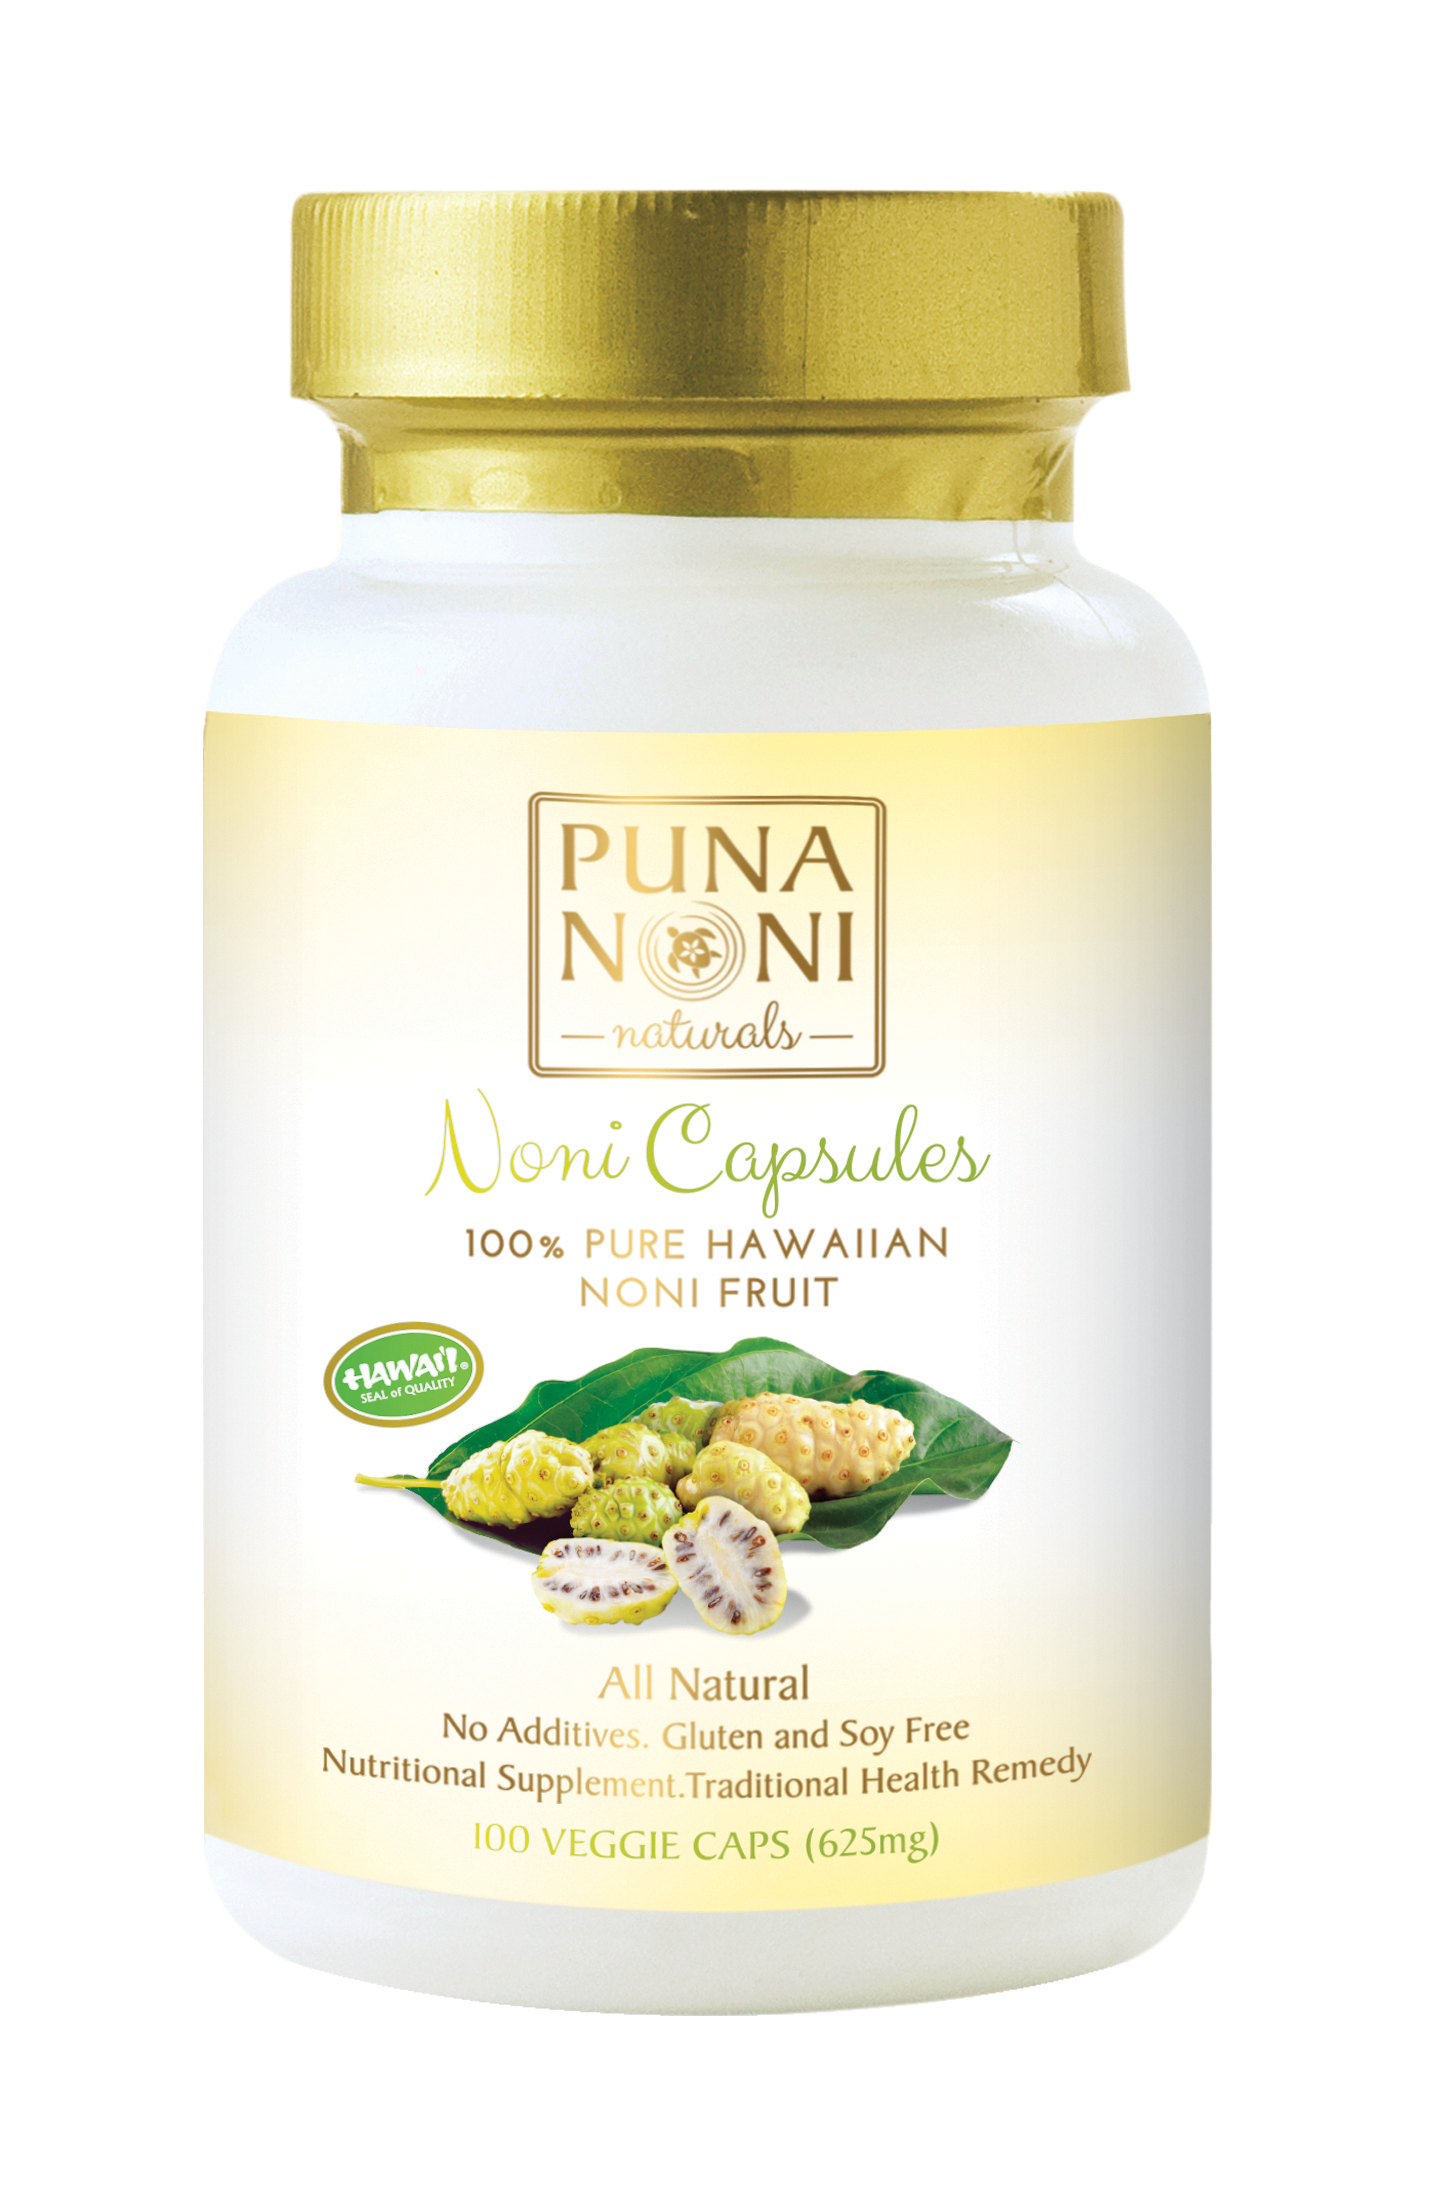 625mg Capsules 100 1 Bottle Puna Noni